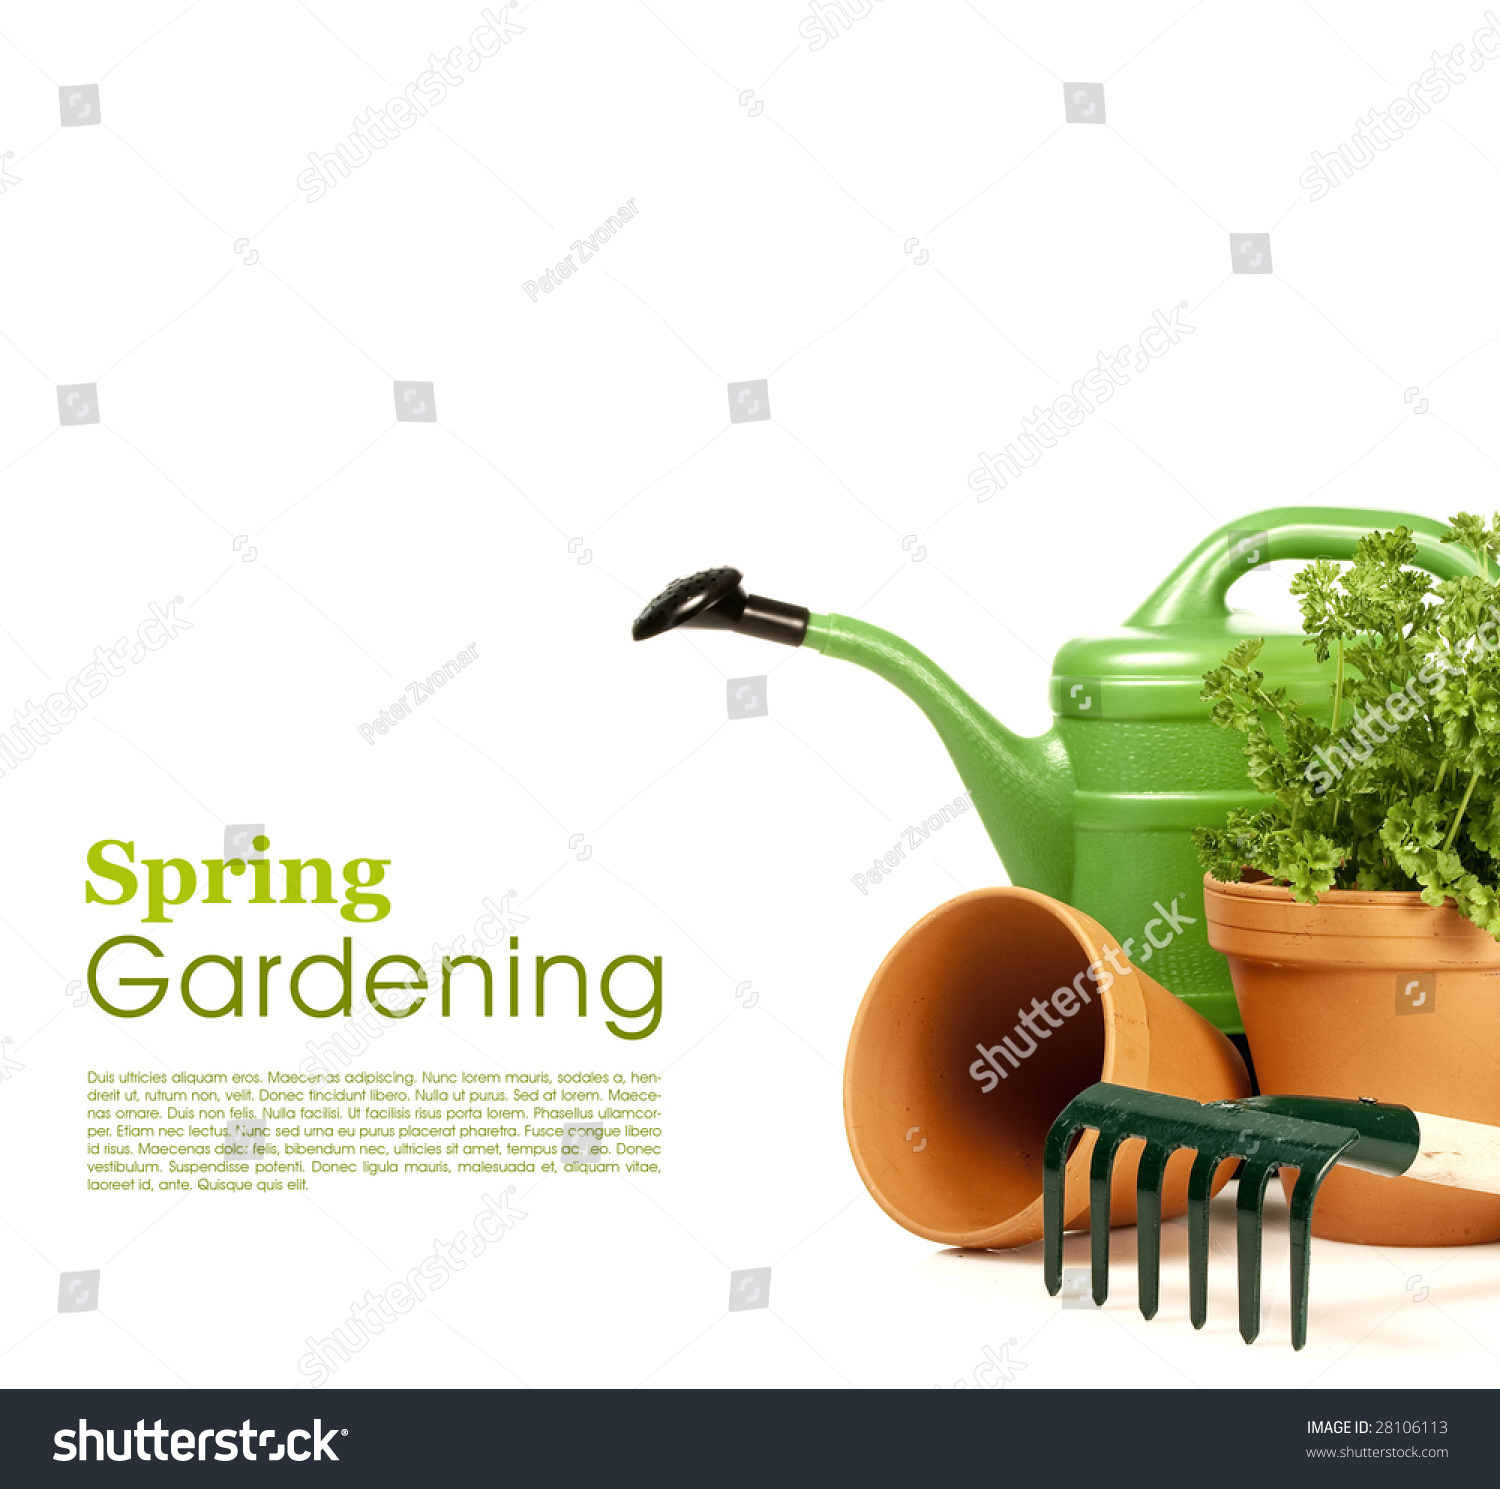 Watering can and garden tools on white stock photo for Gardening tools watering